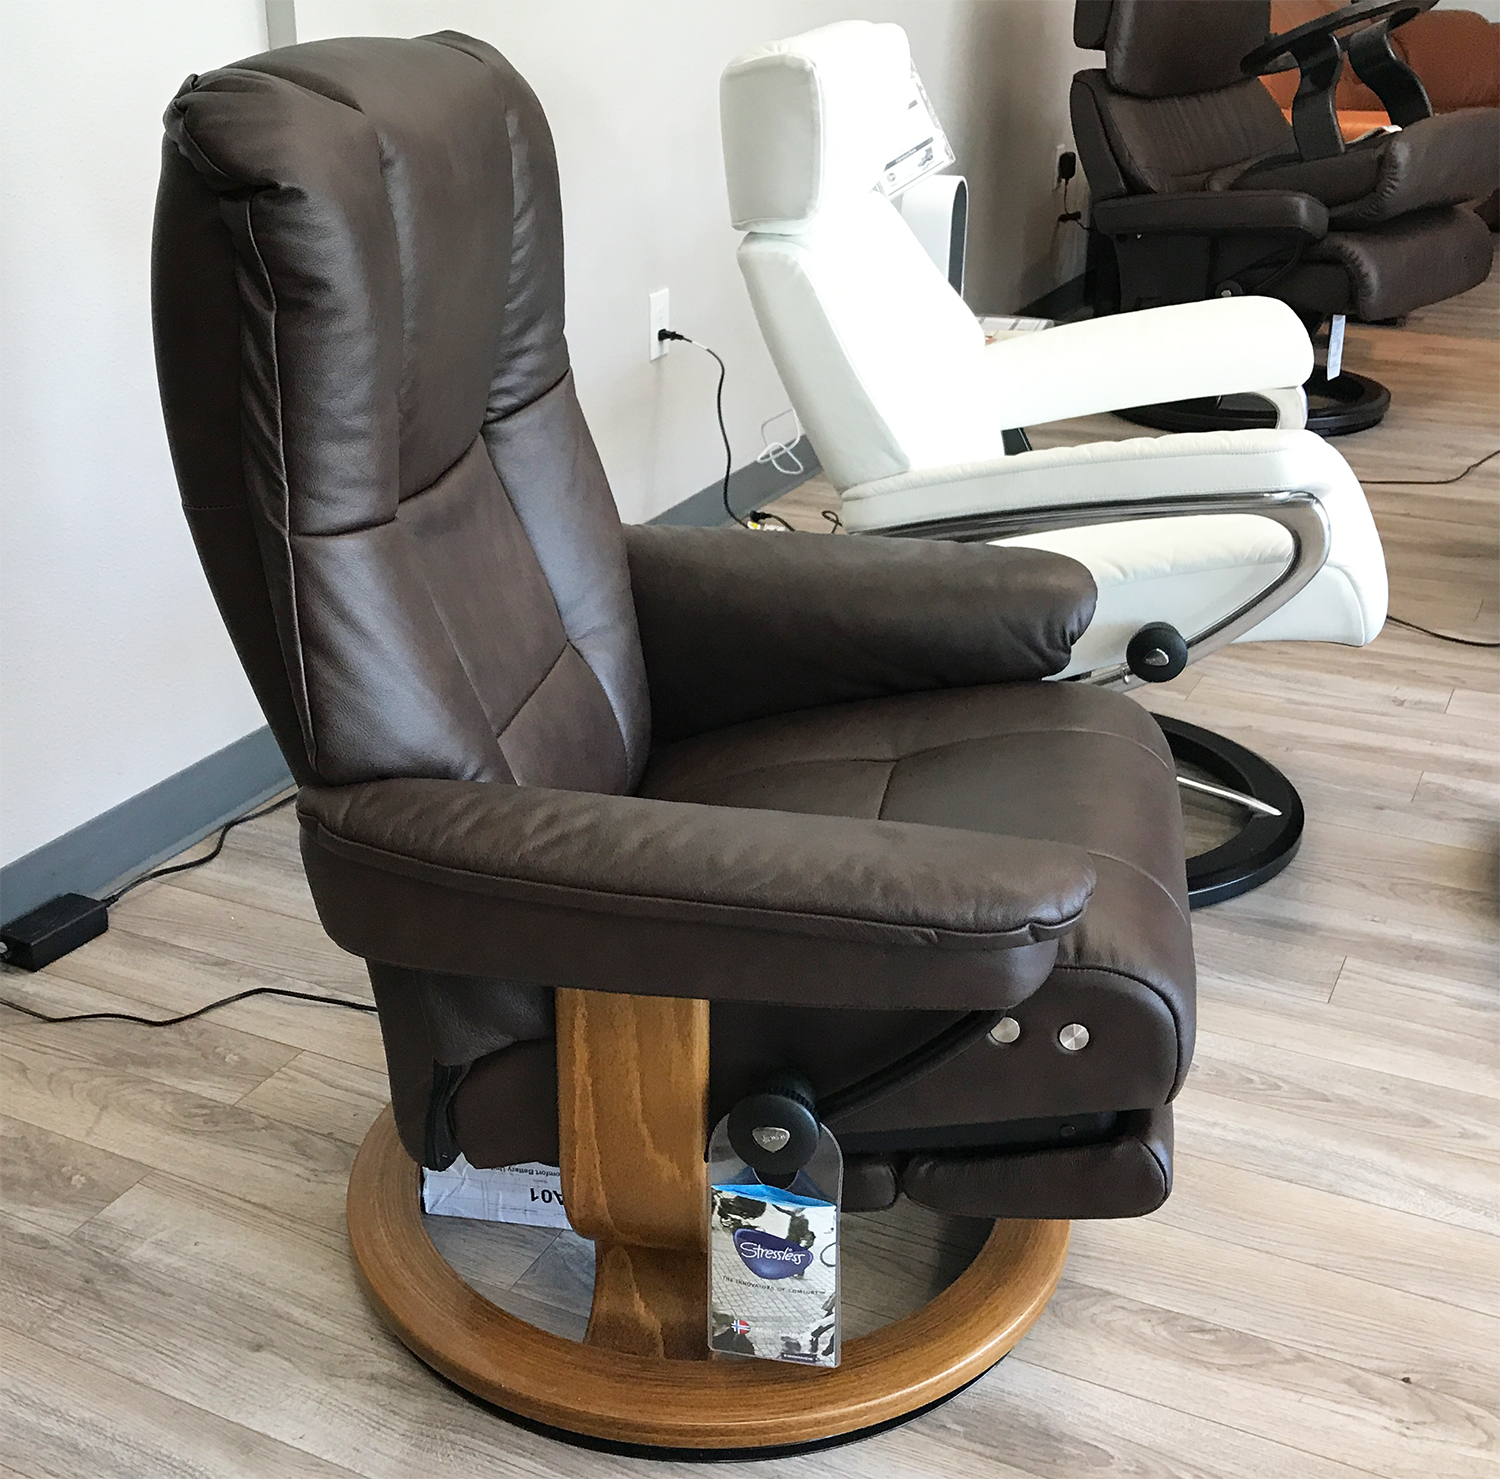 Stressless Paloma Stressless Mayfair Legcomfort Paloma Chocolate Leather Recliner Chair By Ekornes